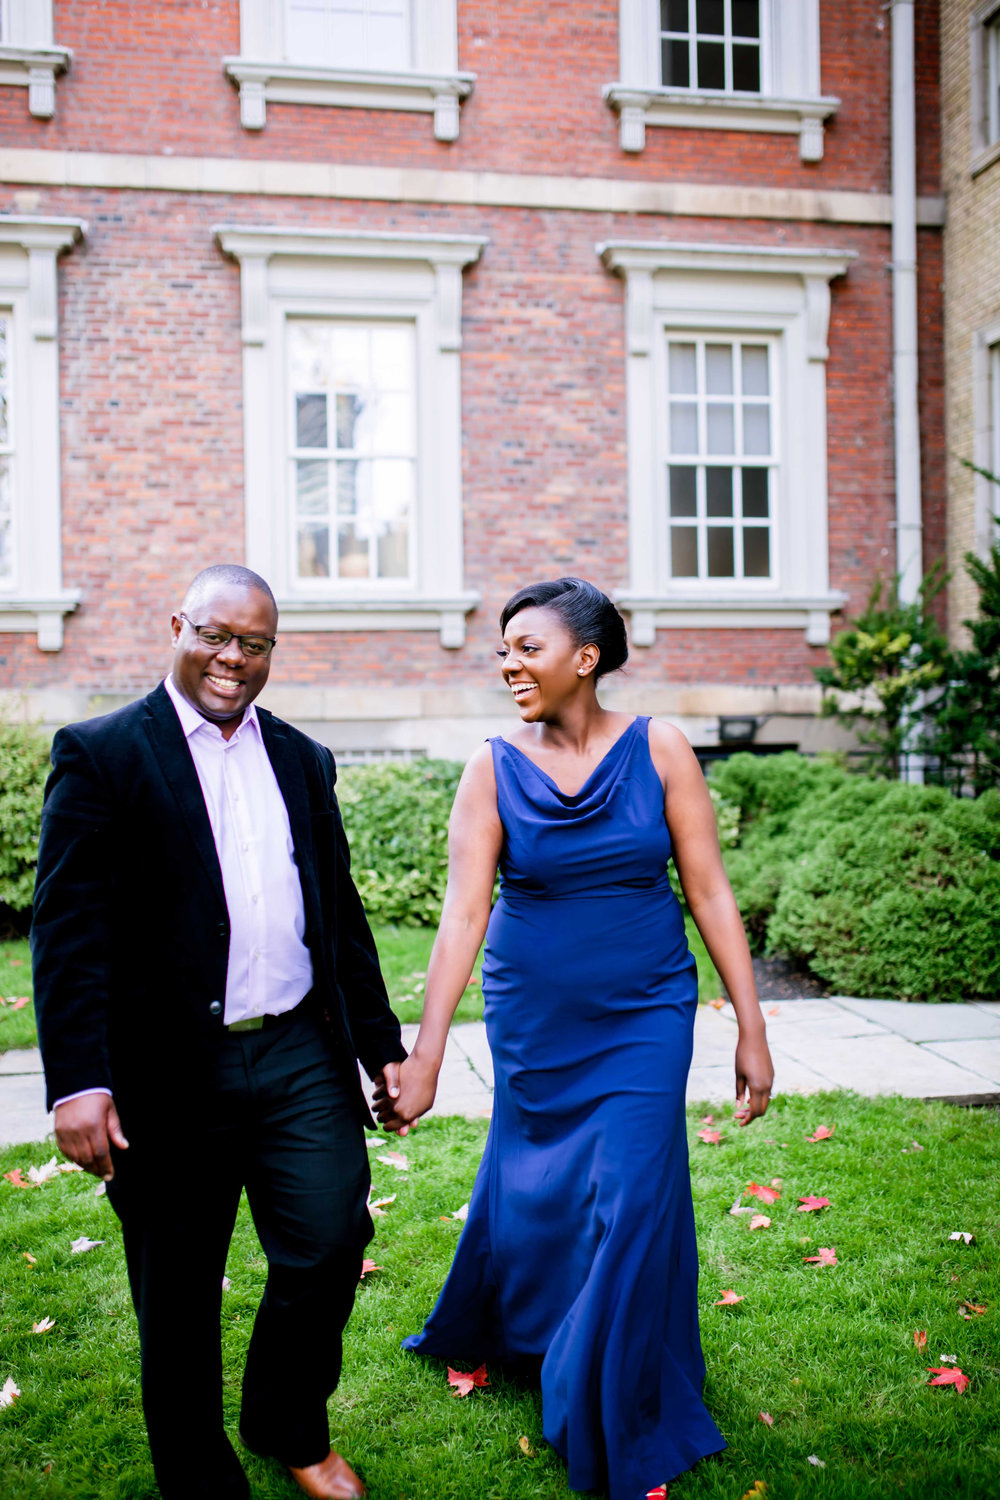 Engagement Photography Toronto Kenyan Kenya Osgoode Hall Toronto Downtown location Photographer Elegant photo ideas Ontario Canada